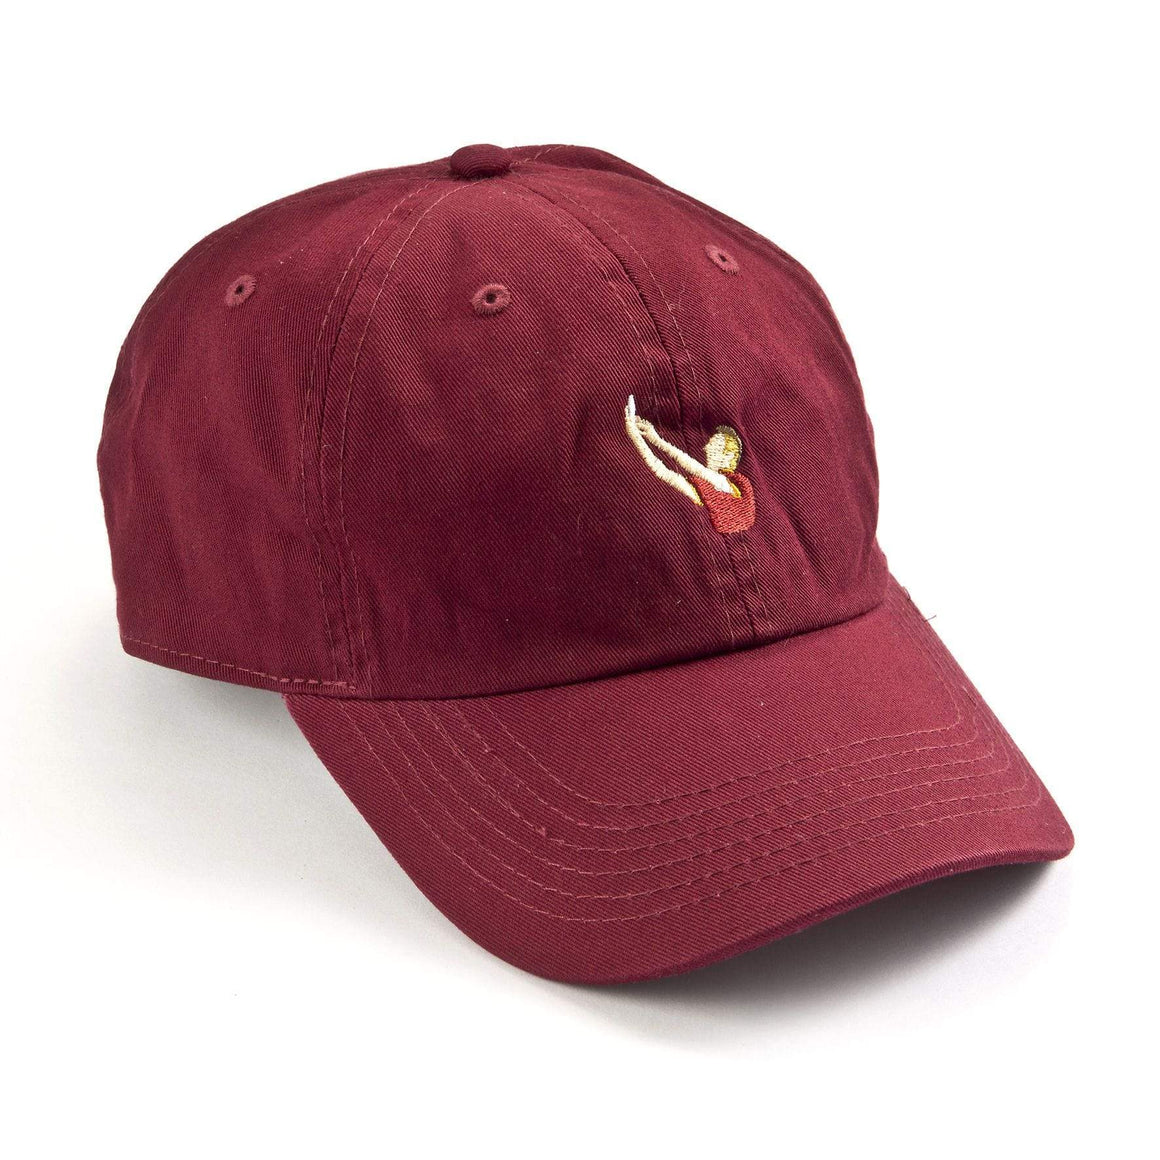 Selfie Cap Burgundy City Boys FC - Football Shirt Collective